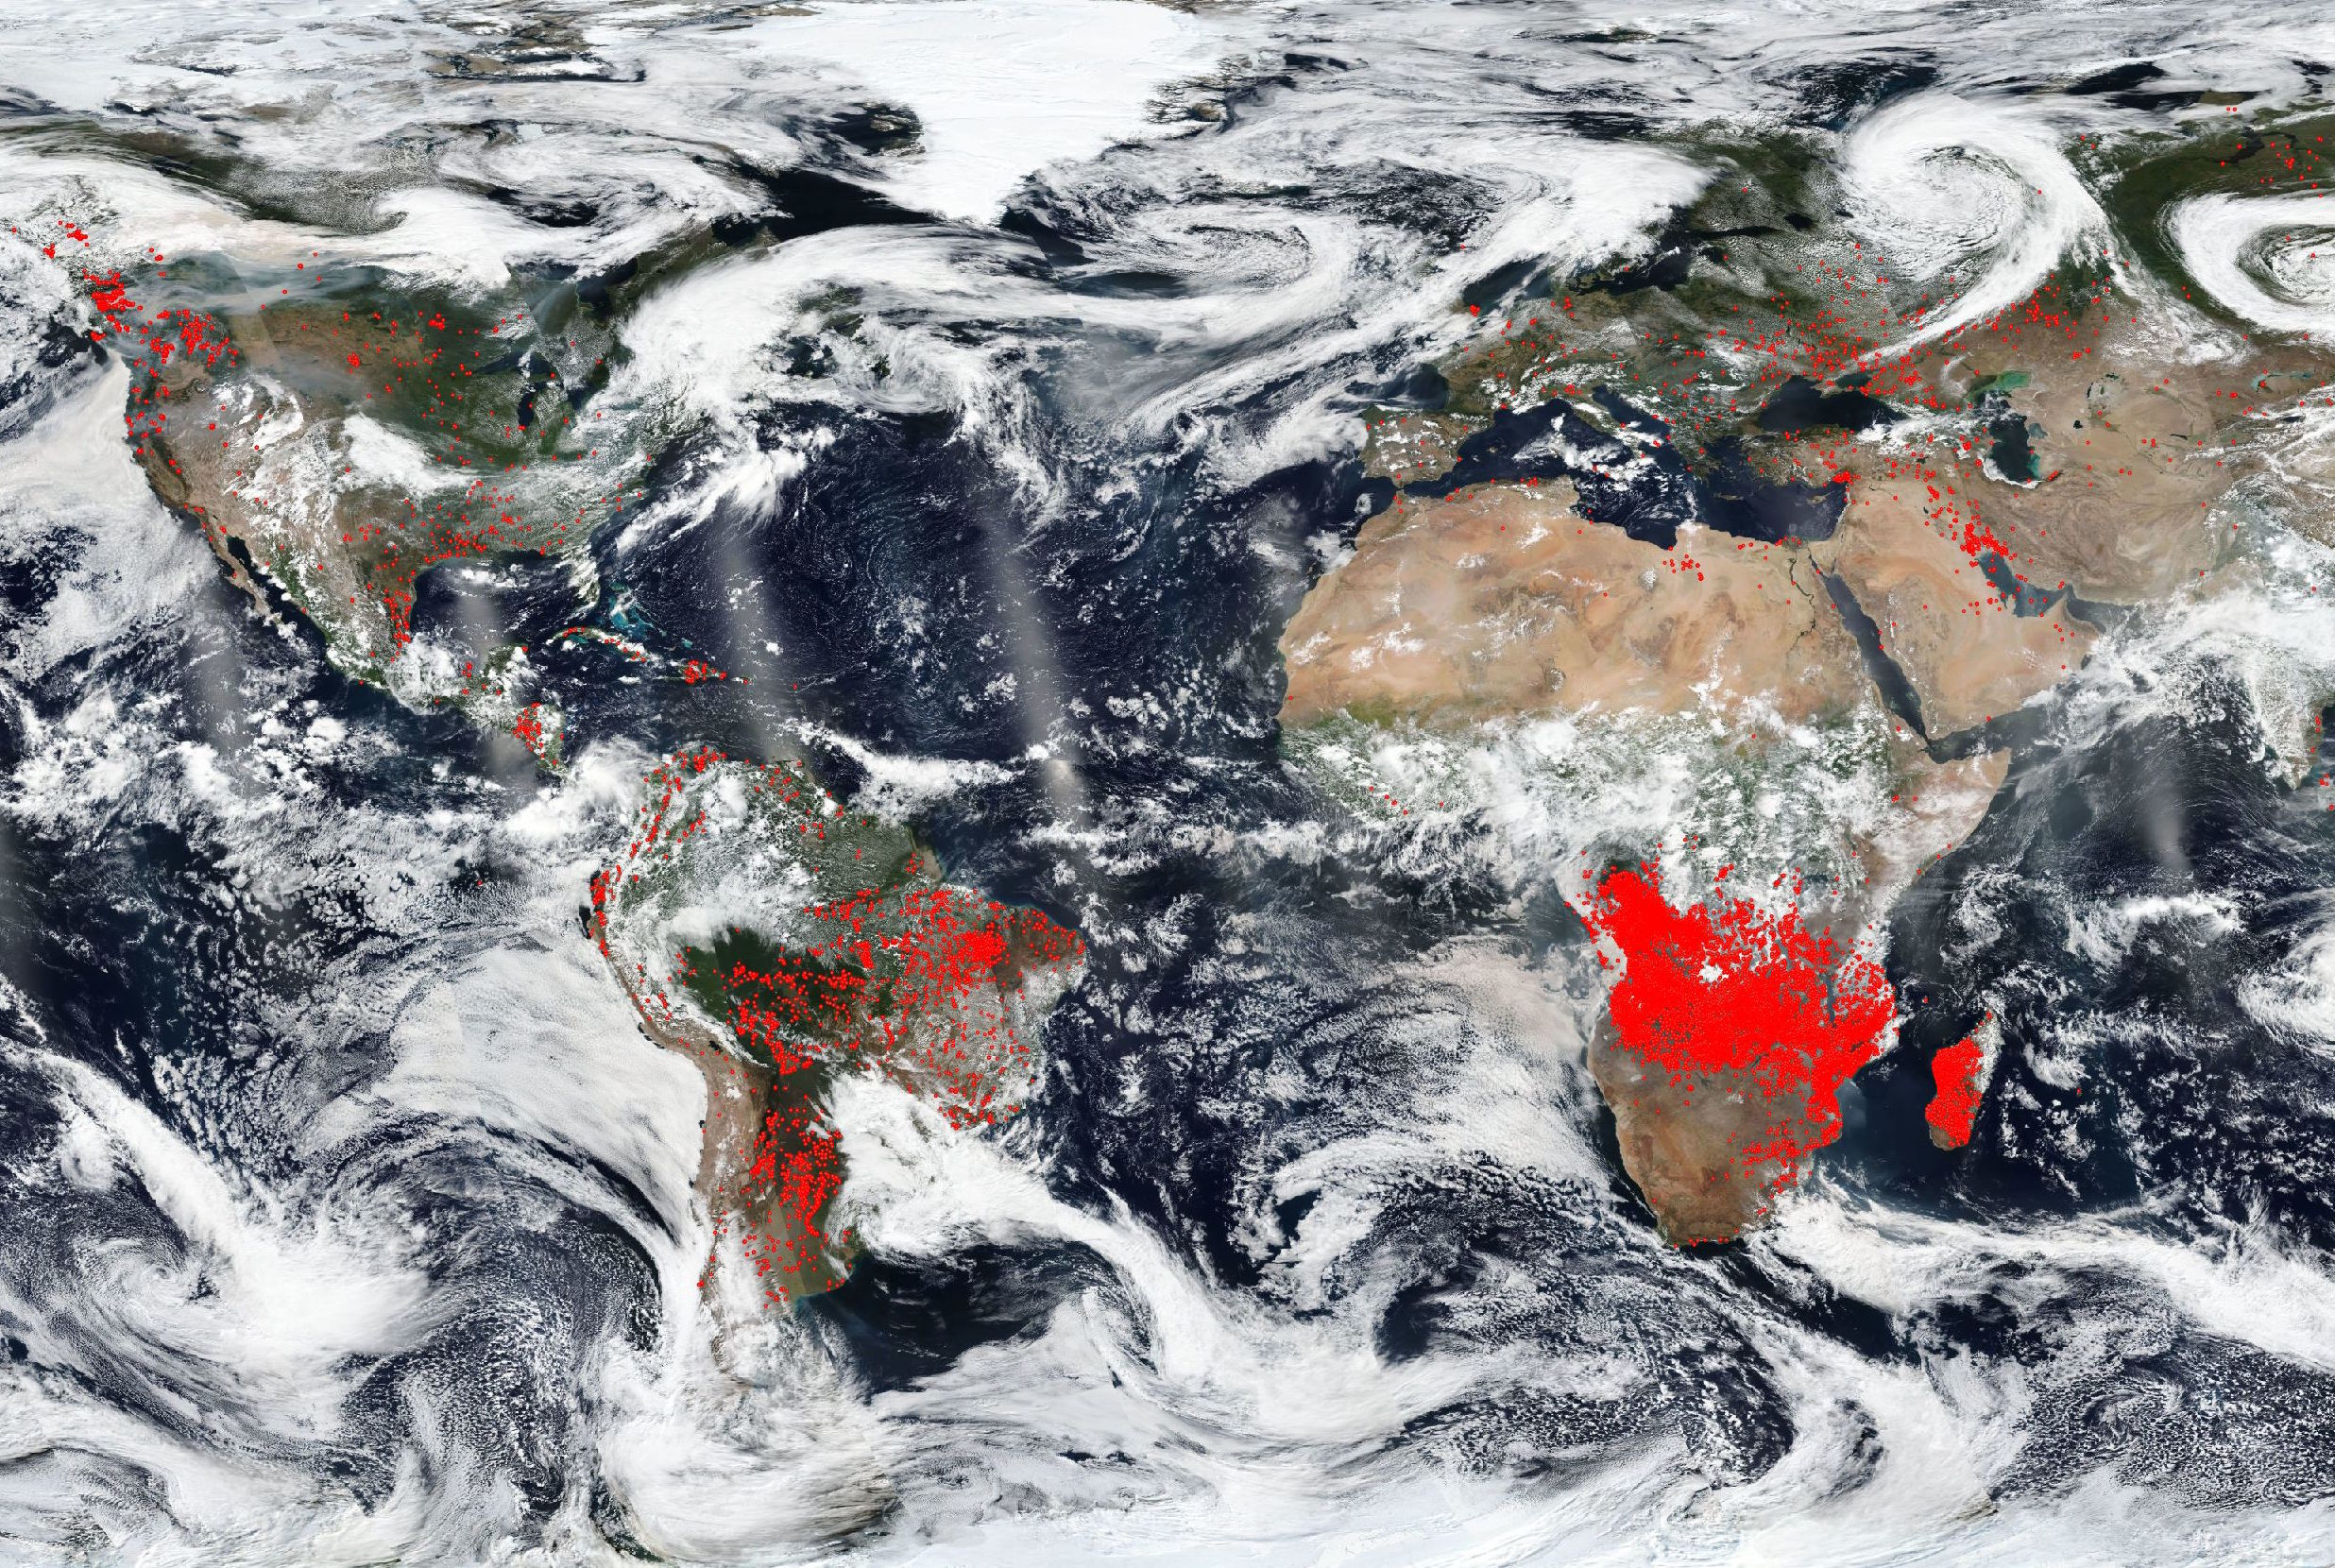 A new image from the NASA Worldview shows the Earth covered in concentrated patches of red dots which represent the actively burning fires.